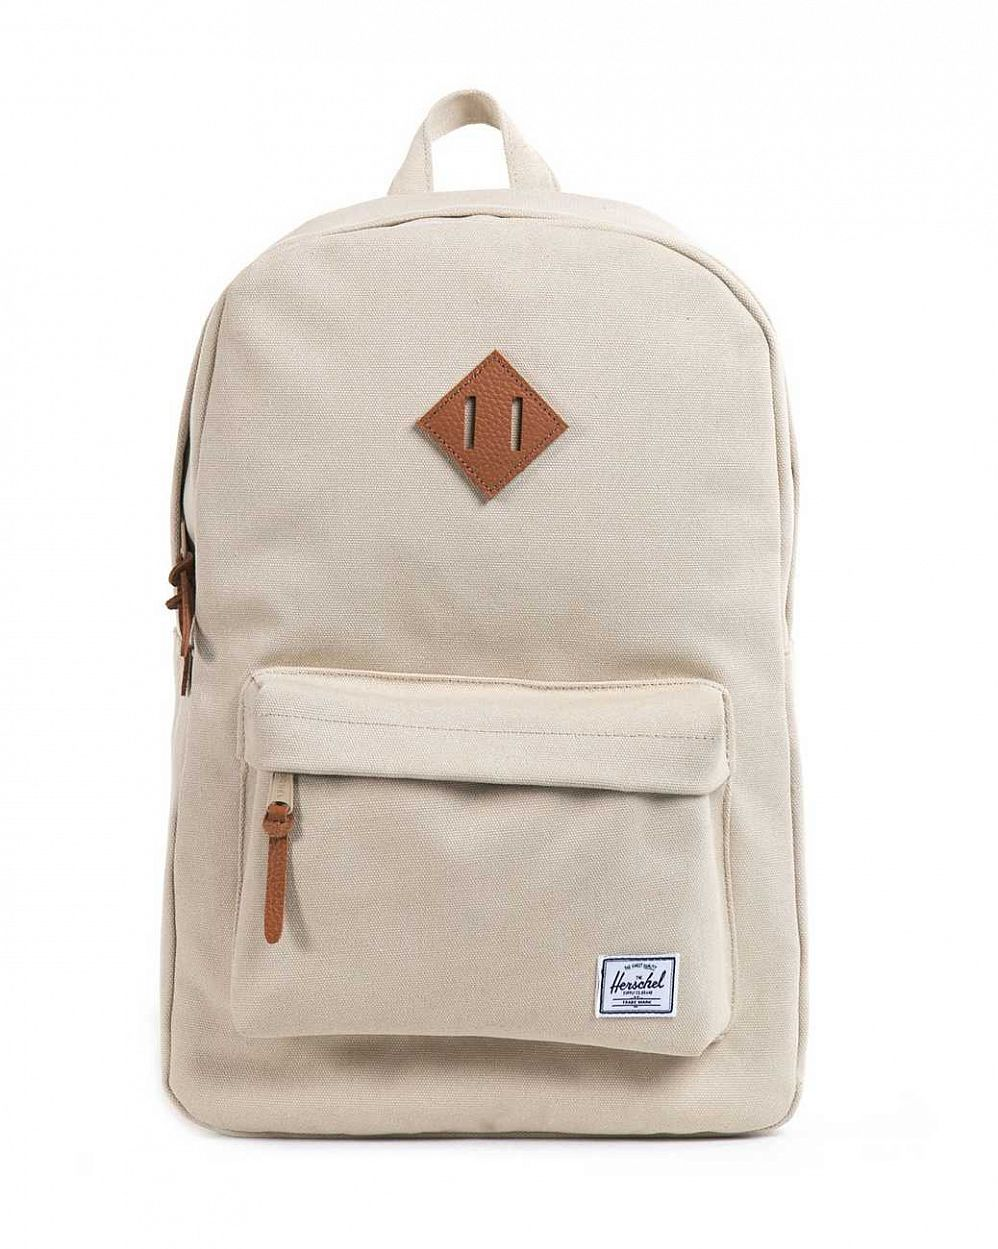 Рюкзак Herschel Heritage Canvas Natural (10007-CA) отзывы